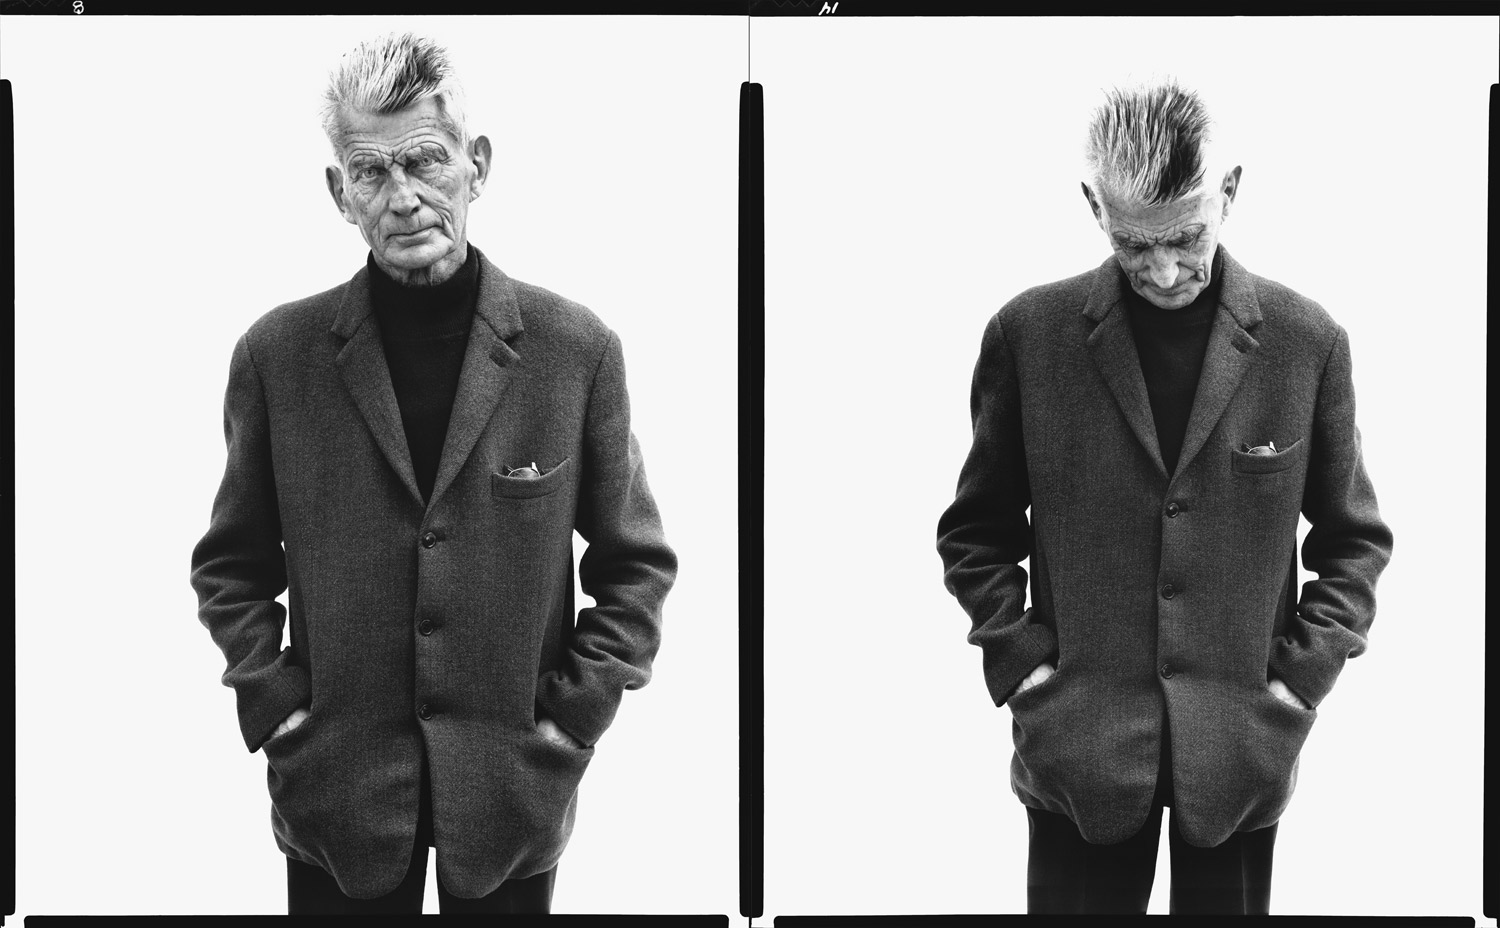 samuel becket 1979 richard avedon